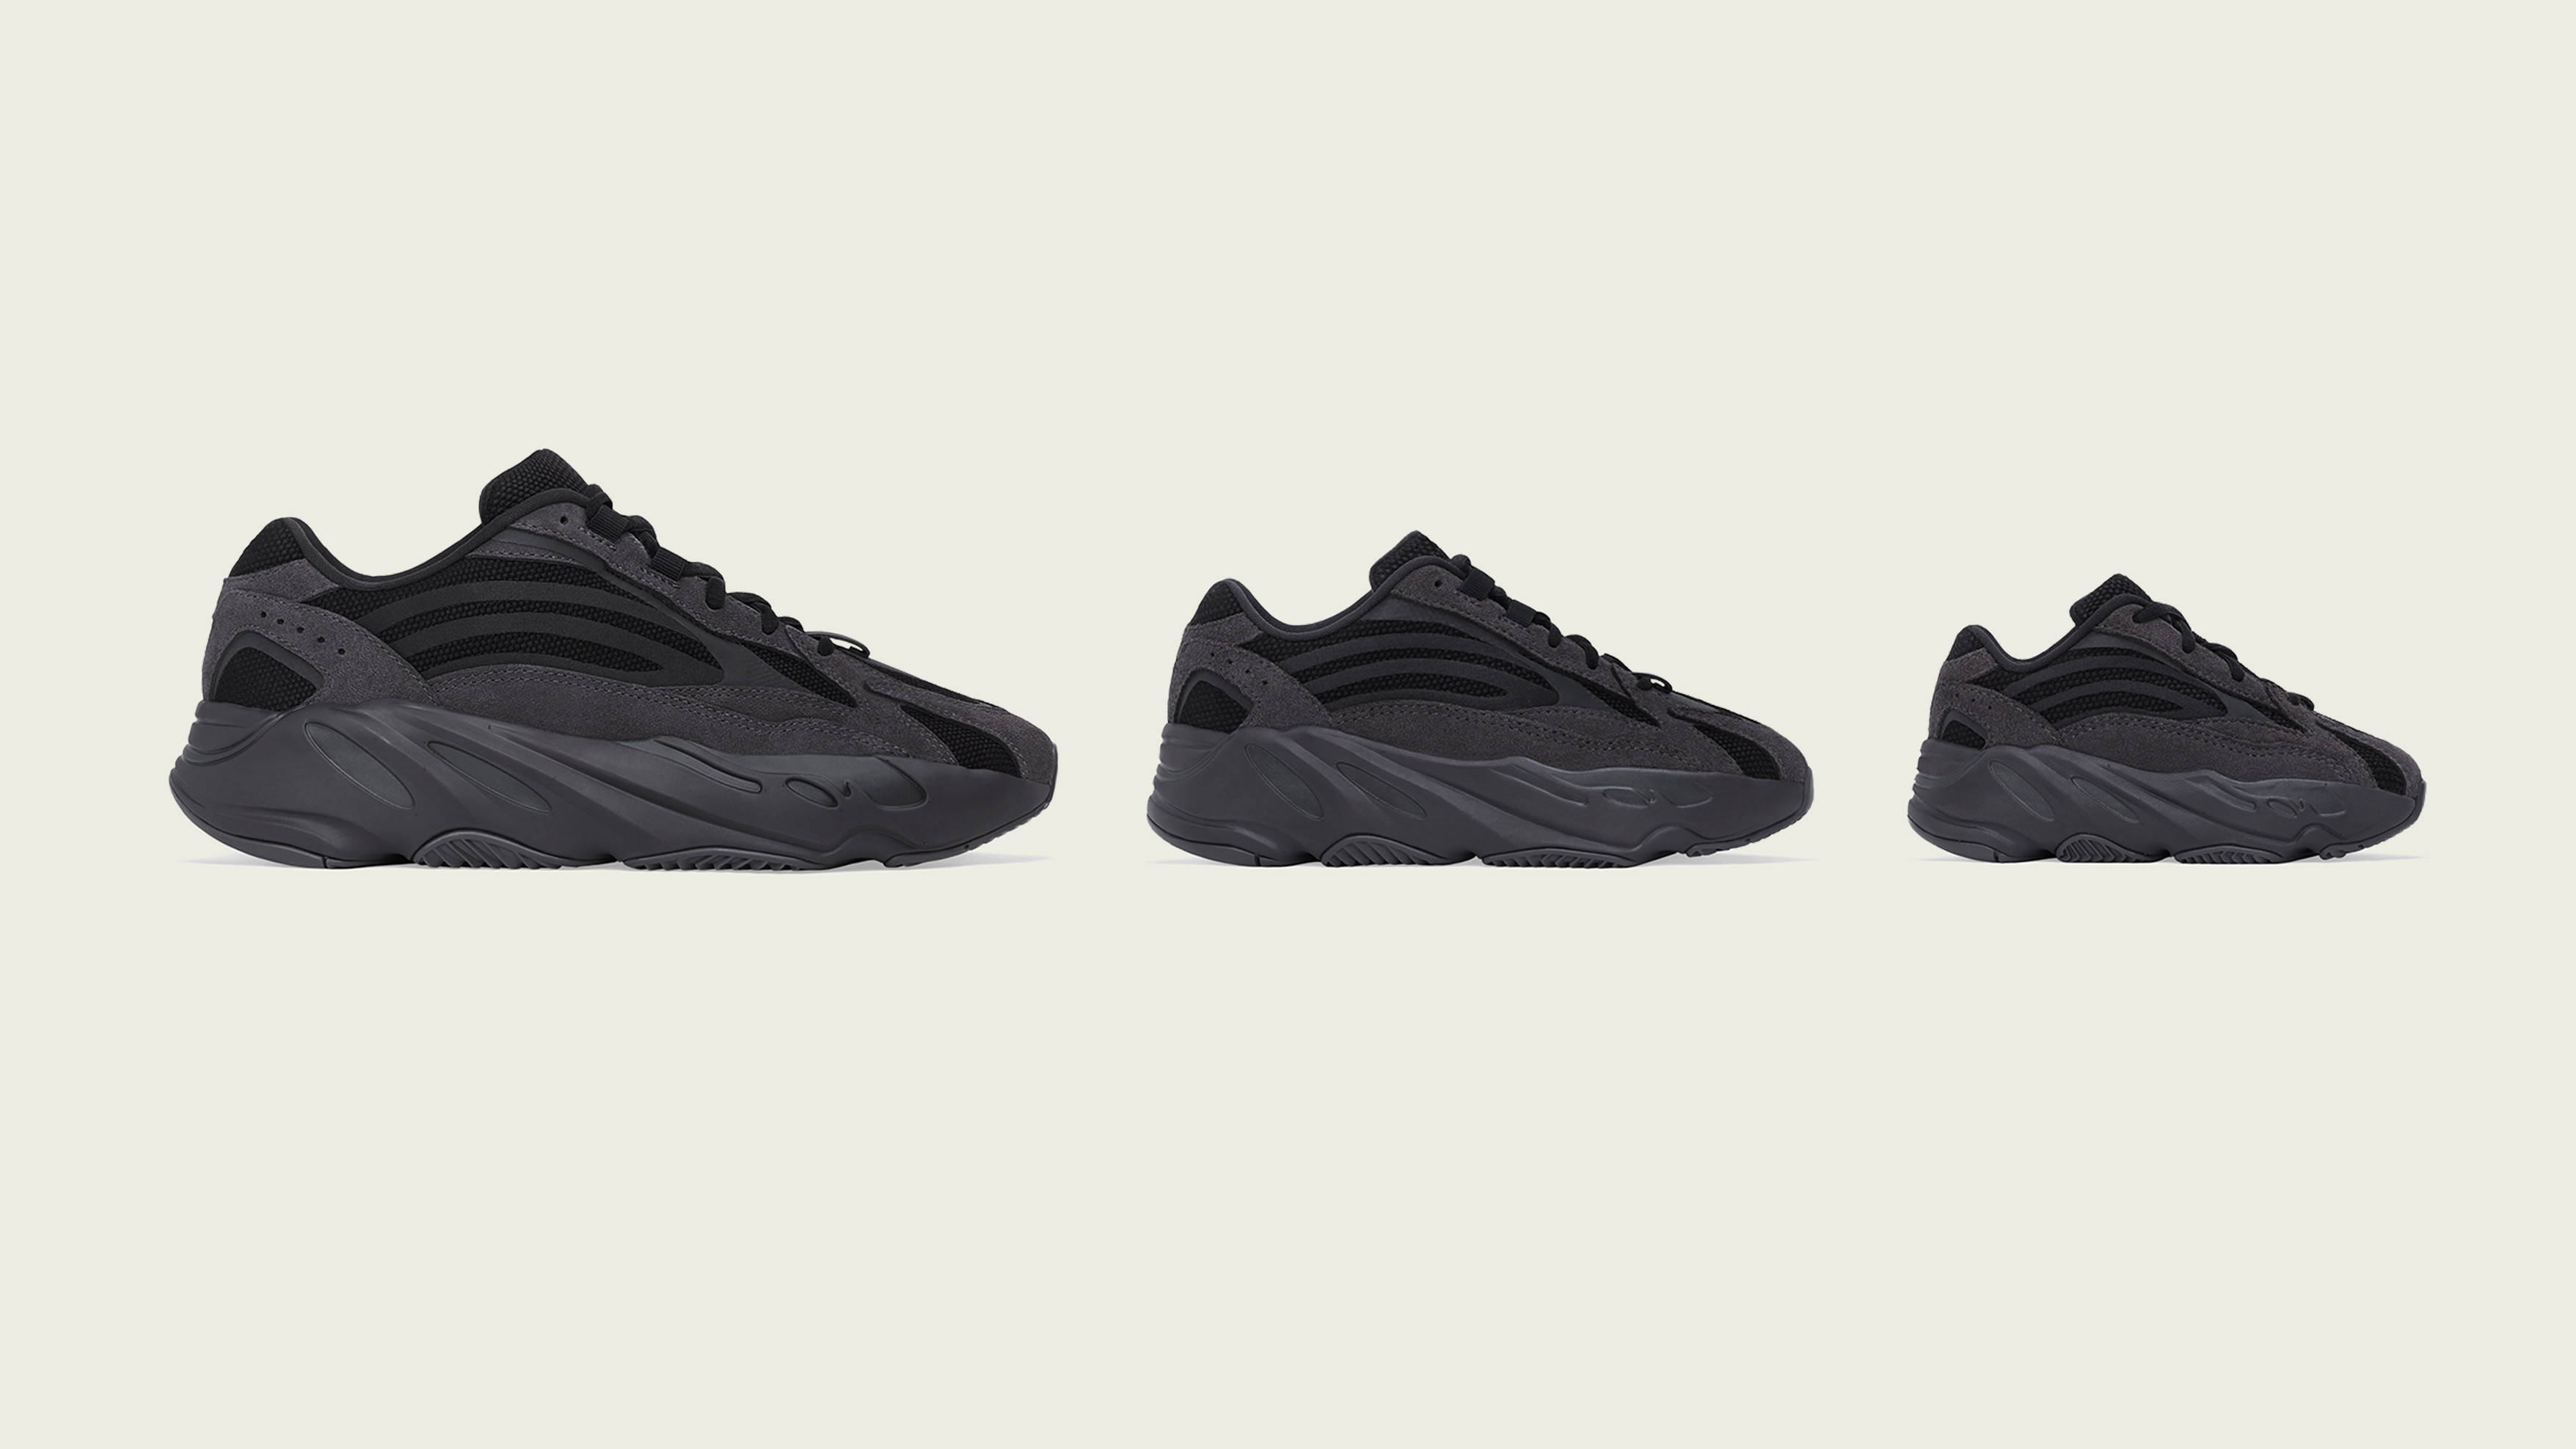 Official Release Date for the 'Vanta' Adidas Yeezy Boost 700 V2